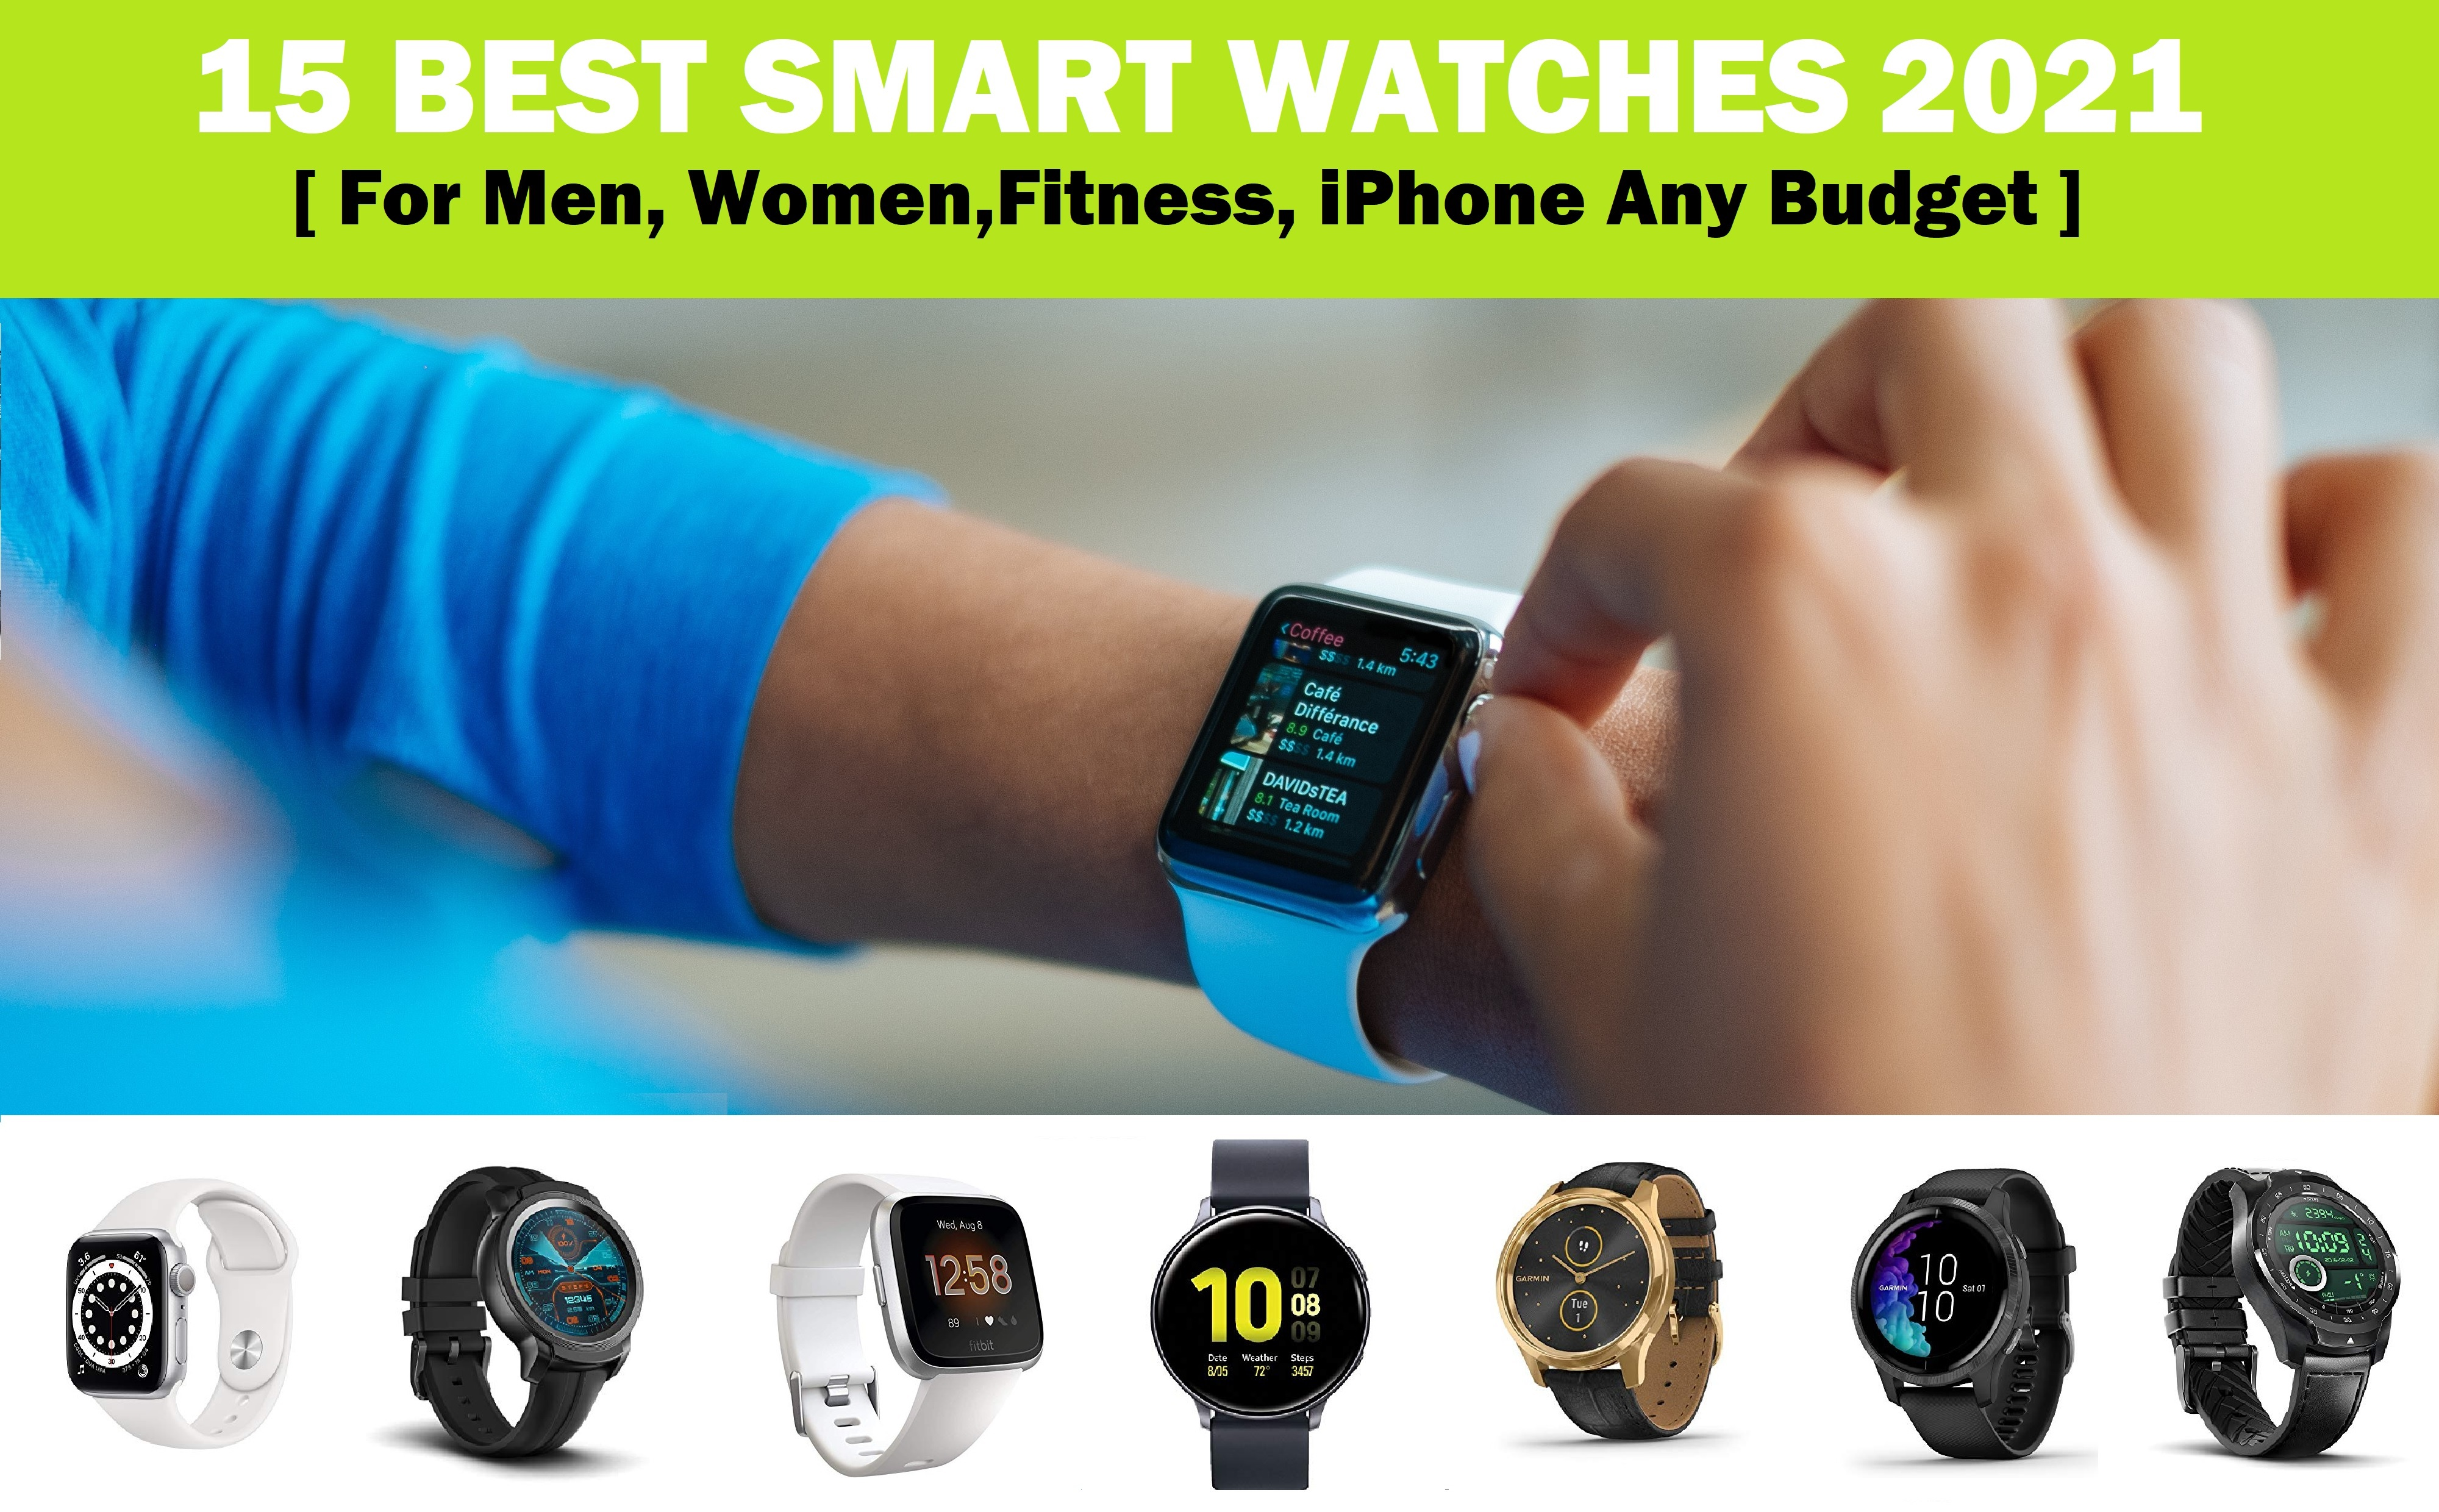 15 Best Smartwatch 2020 for Men, Women,Fitness, iPhone Any Budget to Apple,Android Samsung,Garmin vs TicWatch vs Fitbit vs Huawei vs Fossil